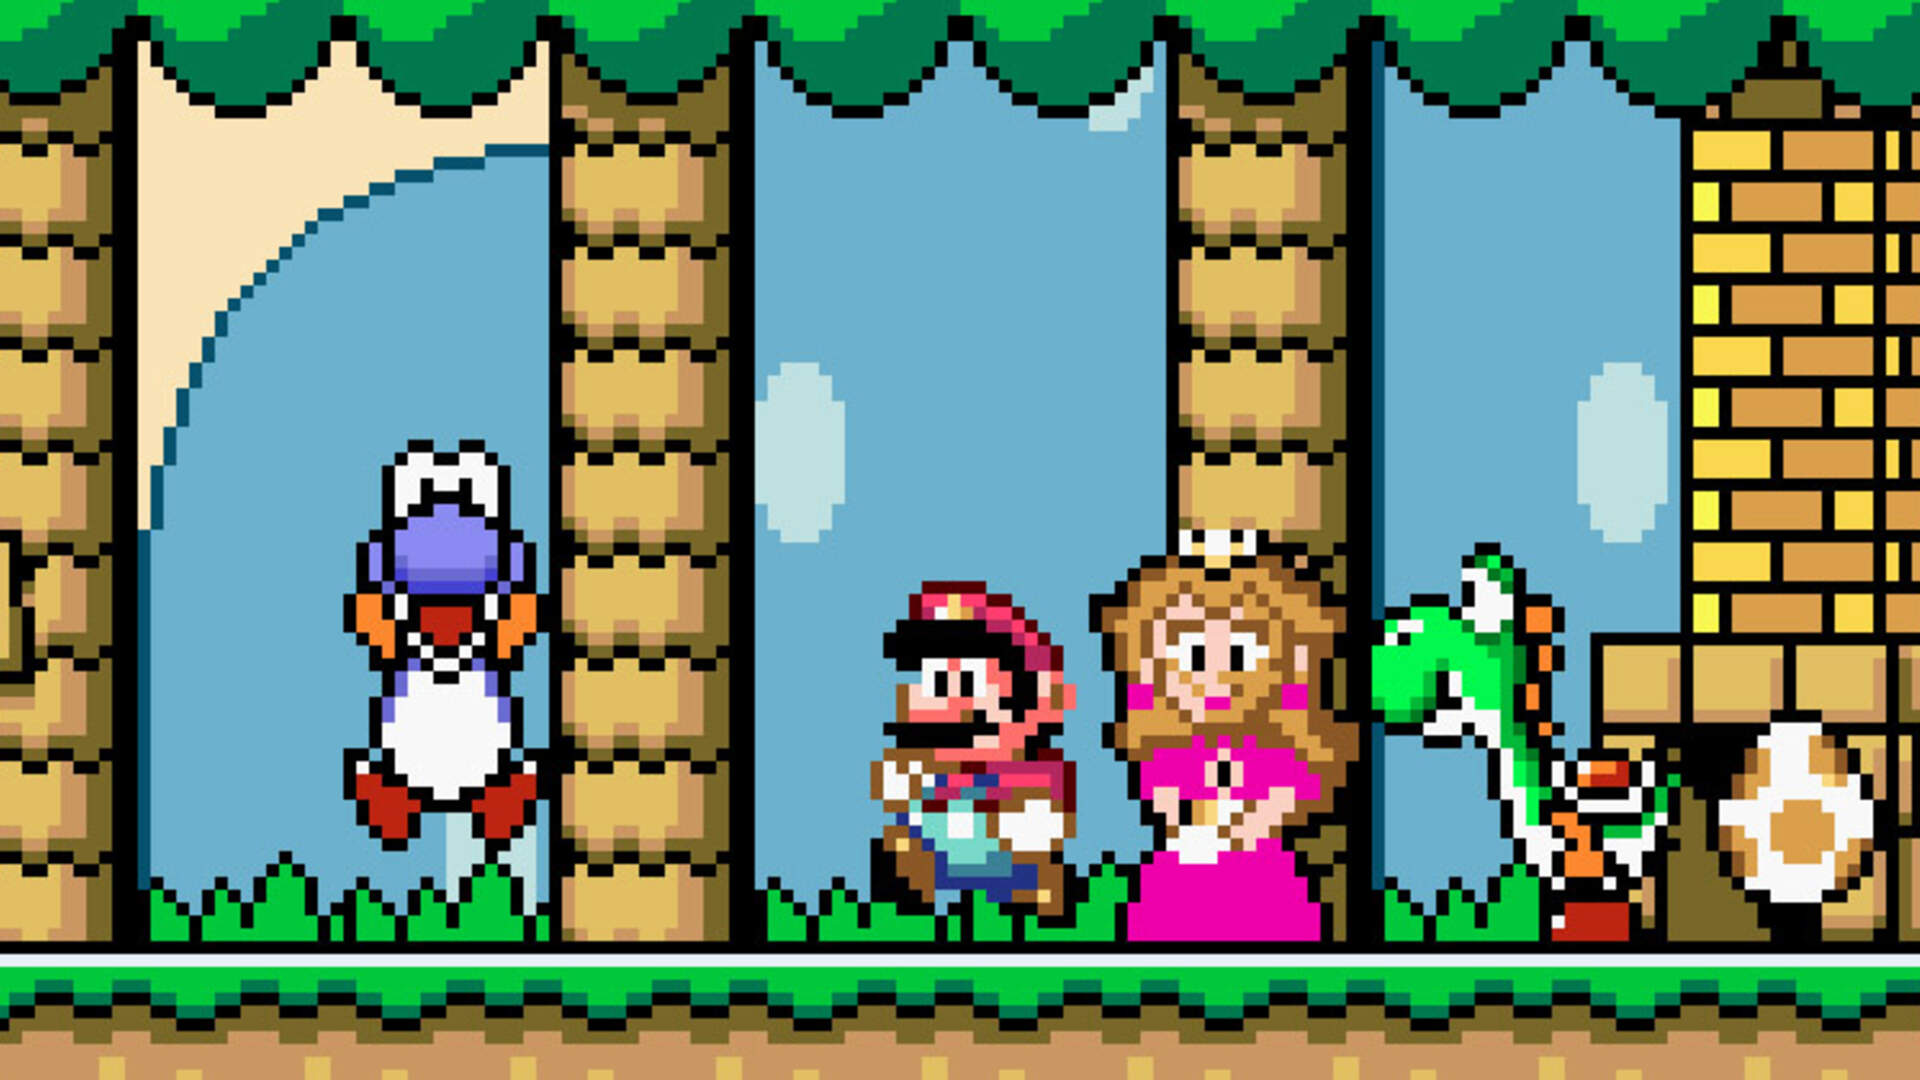 This Week's Retronauts Takes on the (Super Mario) World